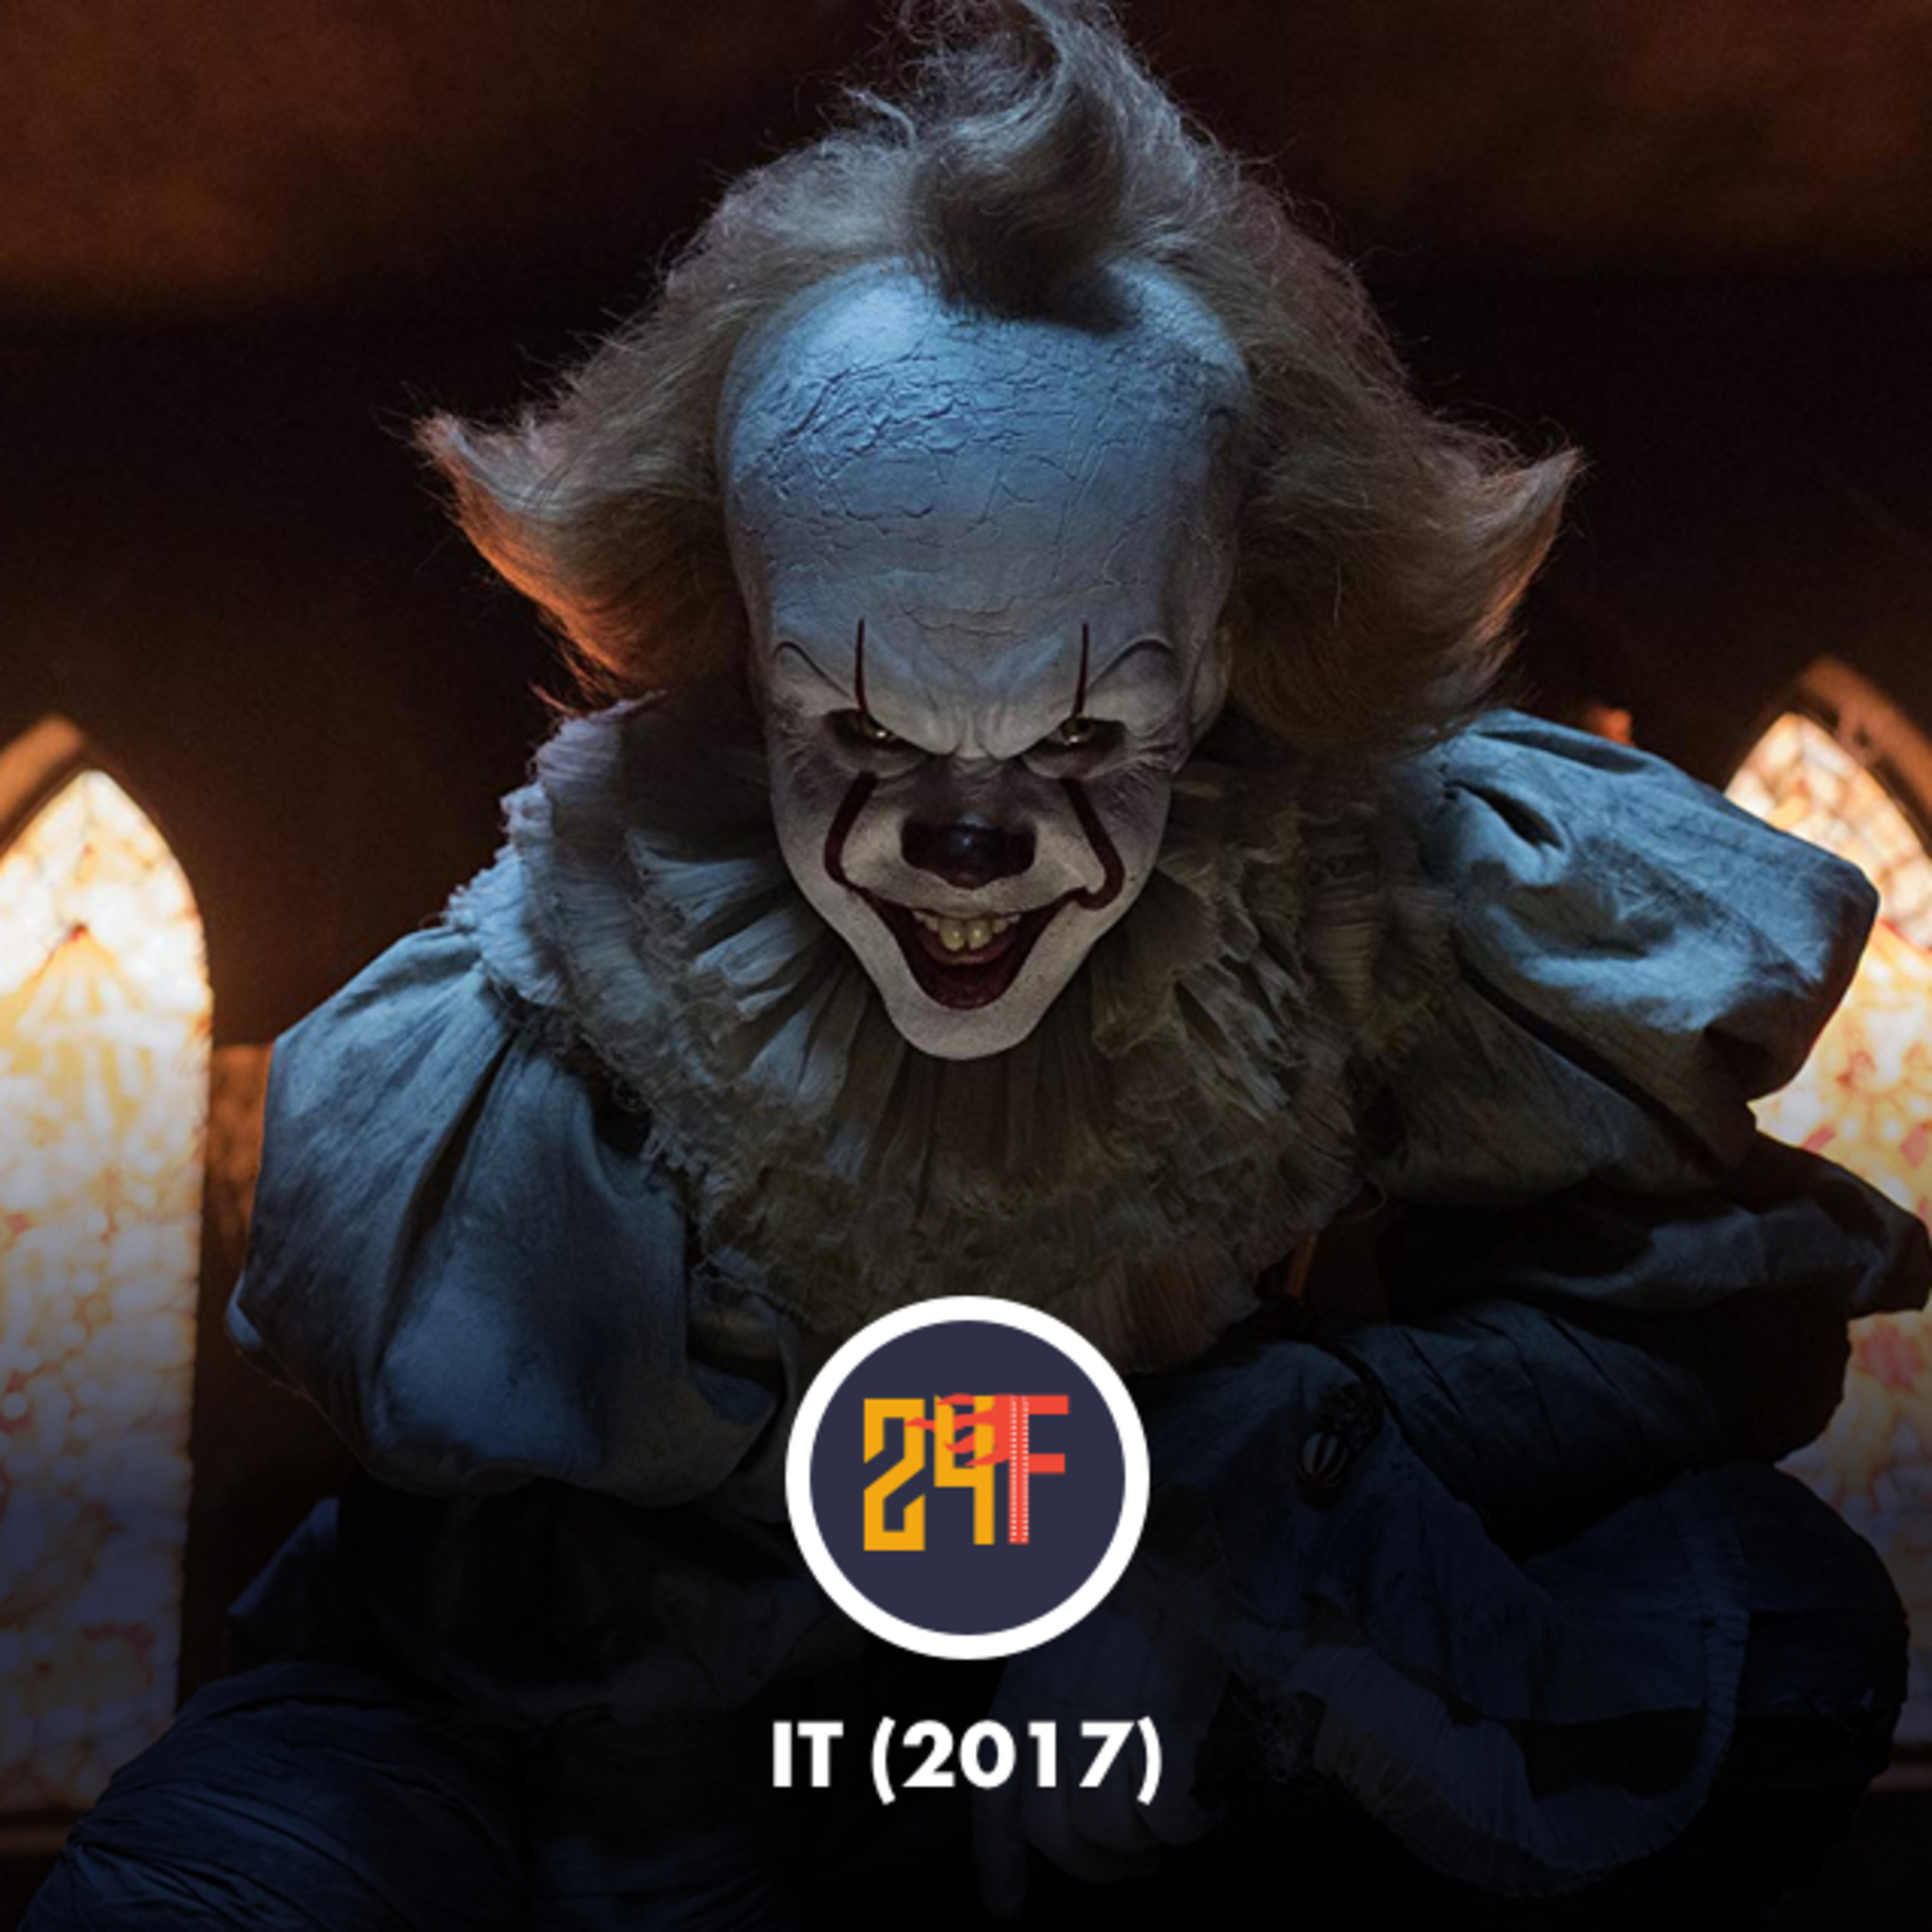 S03E10 - It: Chapter One